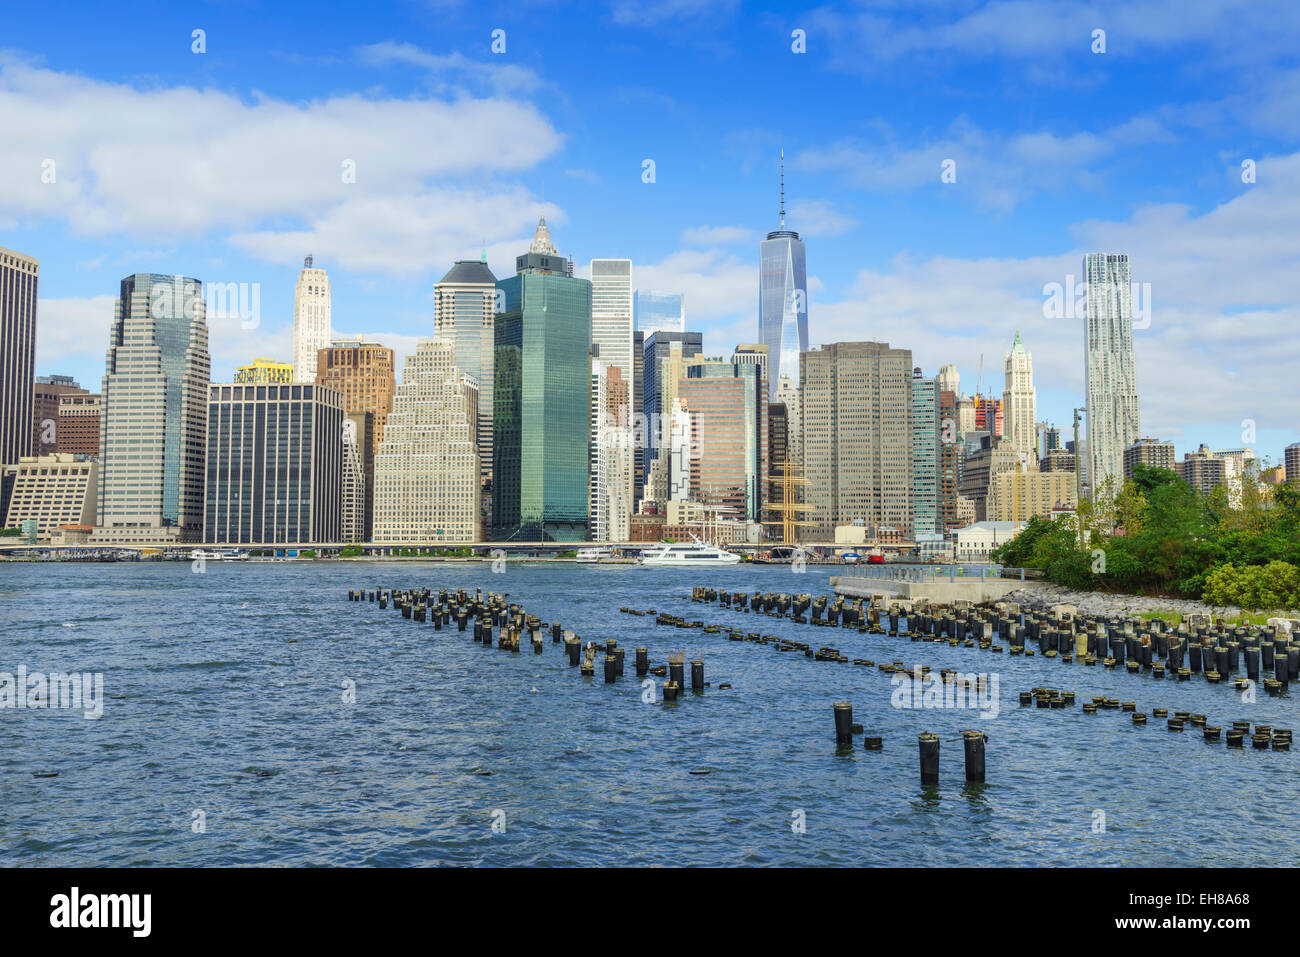 Lower Manhattan skyscrapers including One World Trade Center from across the East River, Manhattan, New York City, Stock Photo